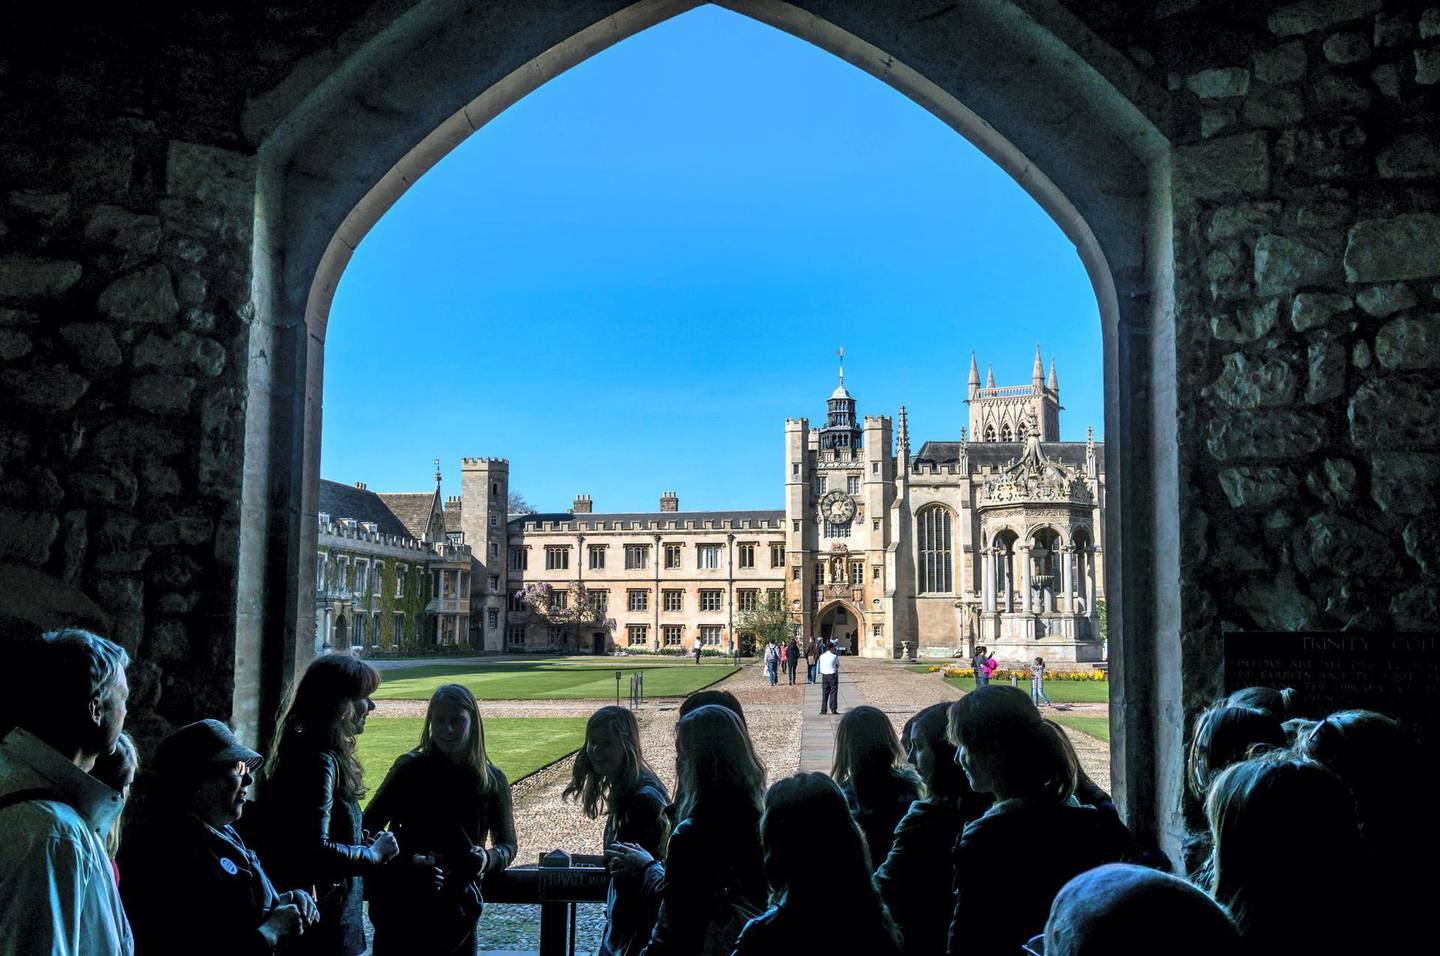 E6EM93 A crowd of tourists looking through a stone archway at Trinity College and the Grand Court, University of Cambridge, Cambridgeshire, England, UK.